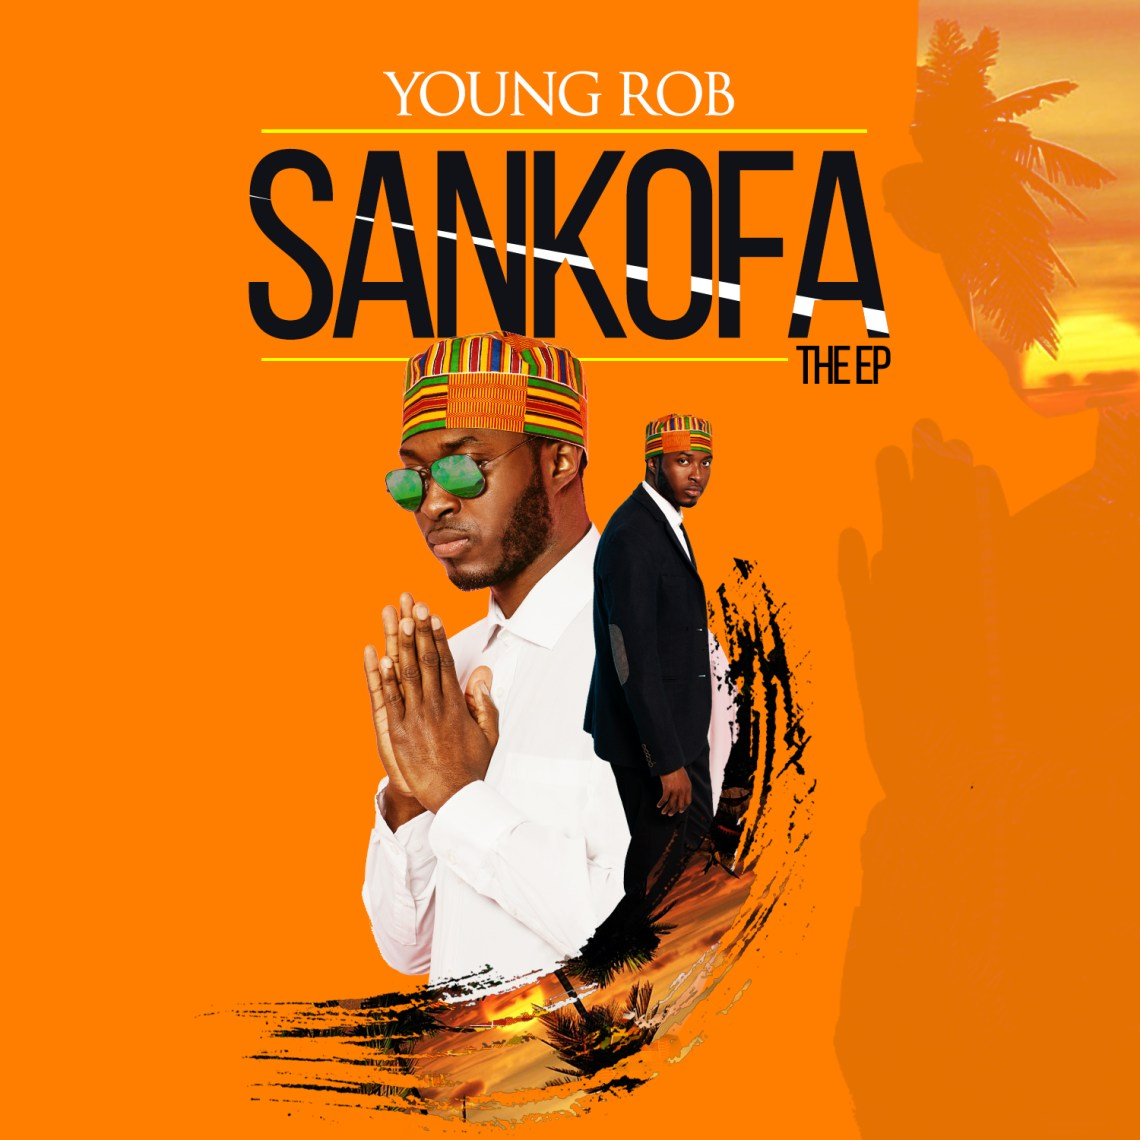 Young Rob out with Sankofa EP